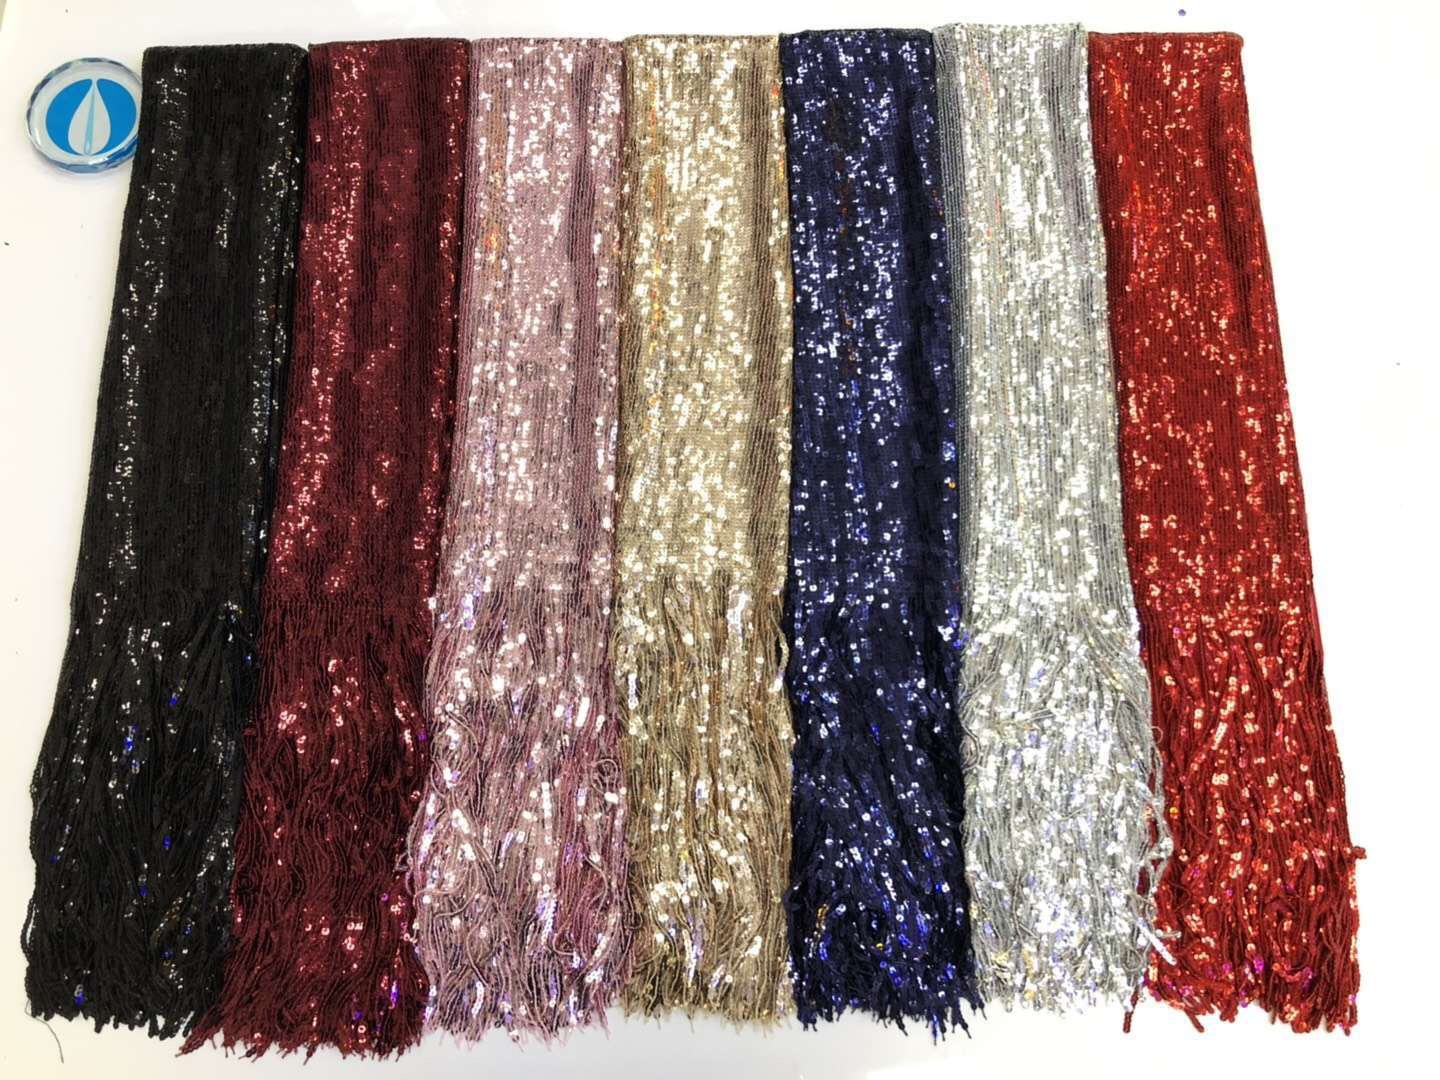 BEAUTIFICAL nigerian lace fabrics 5 yards sequin lace fabric heavy tassel lace 2019 high quality free shipping for party ML1N744-in Lace from Home & Garden    2